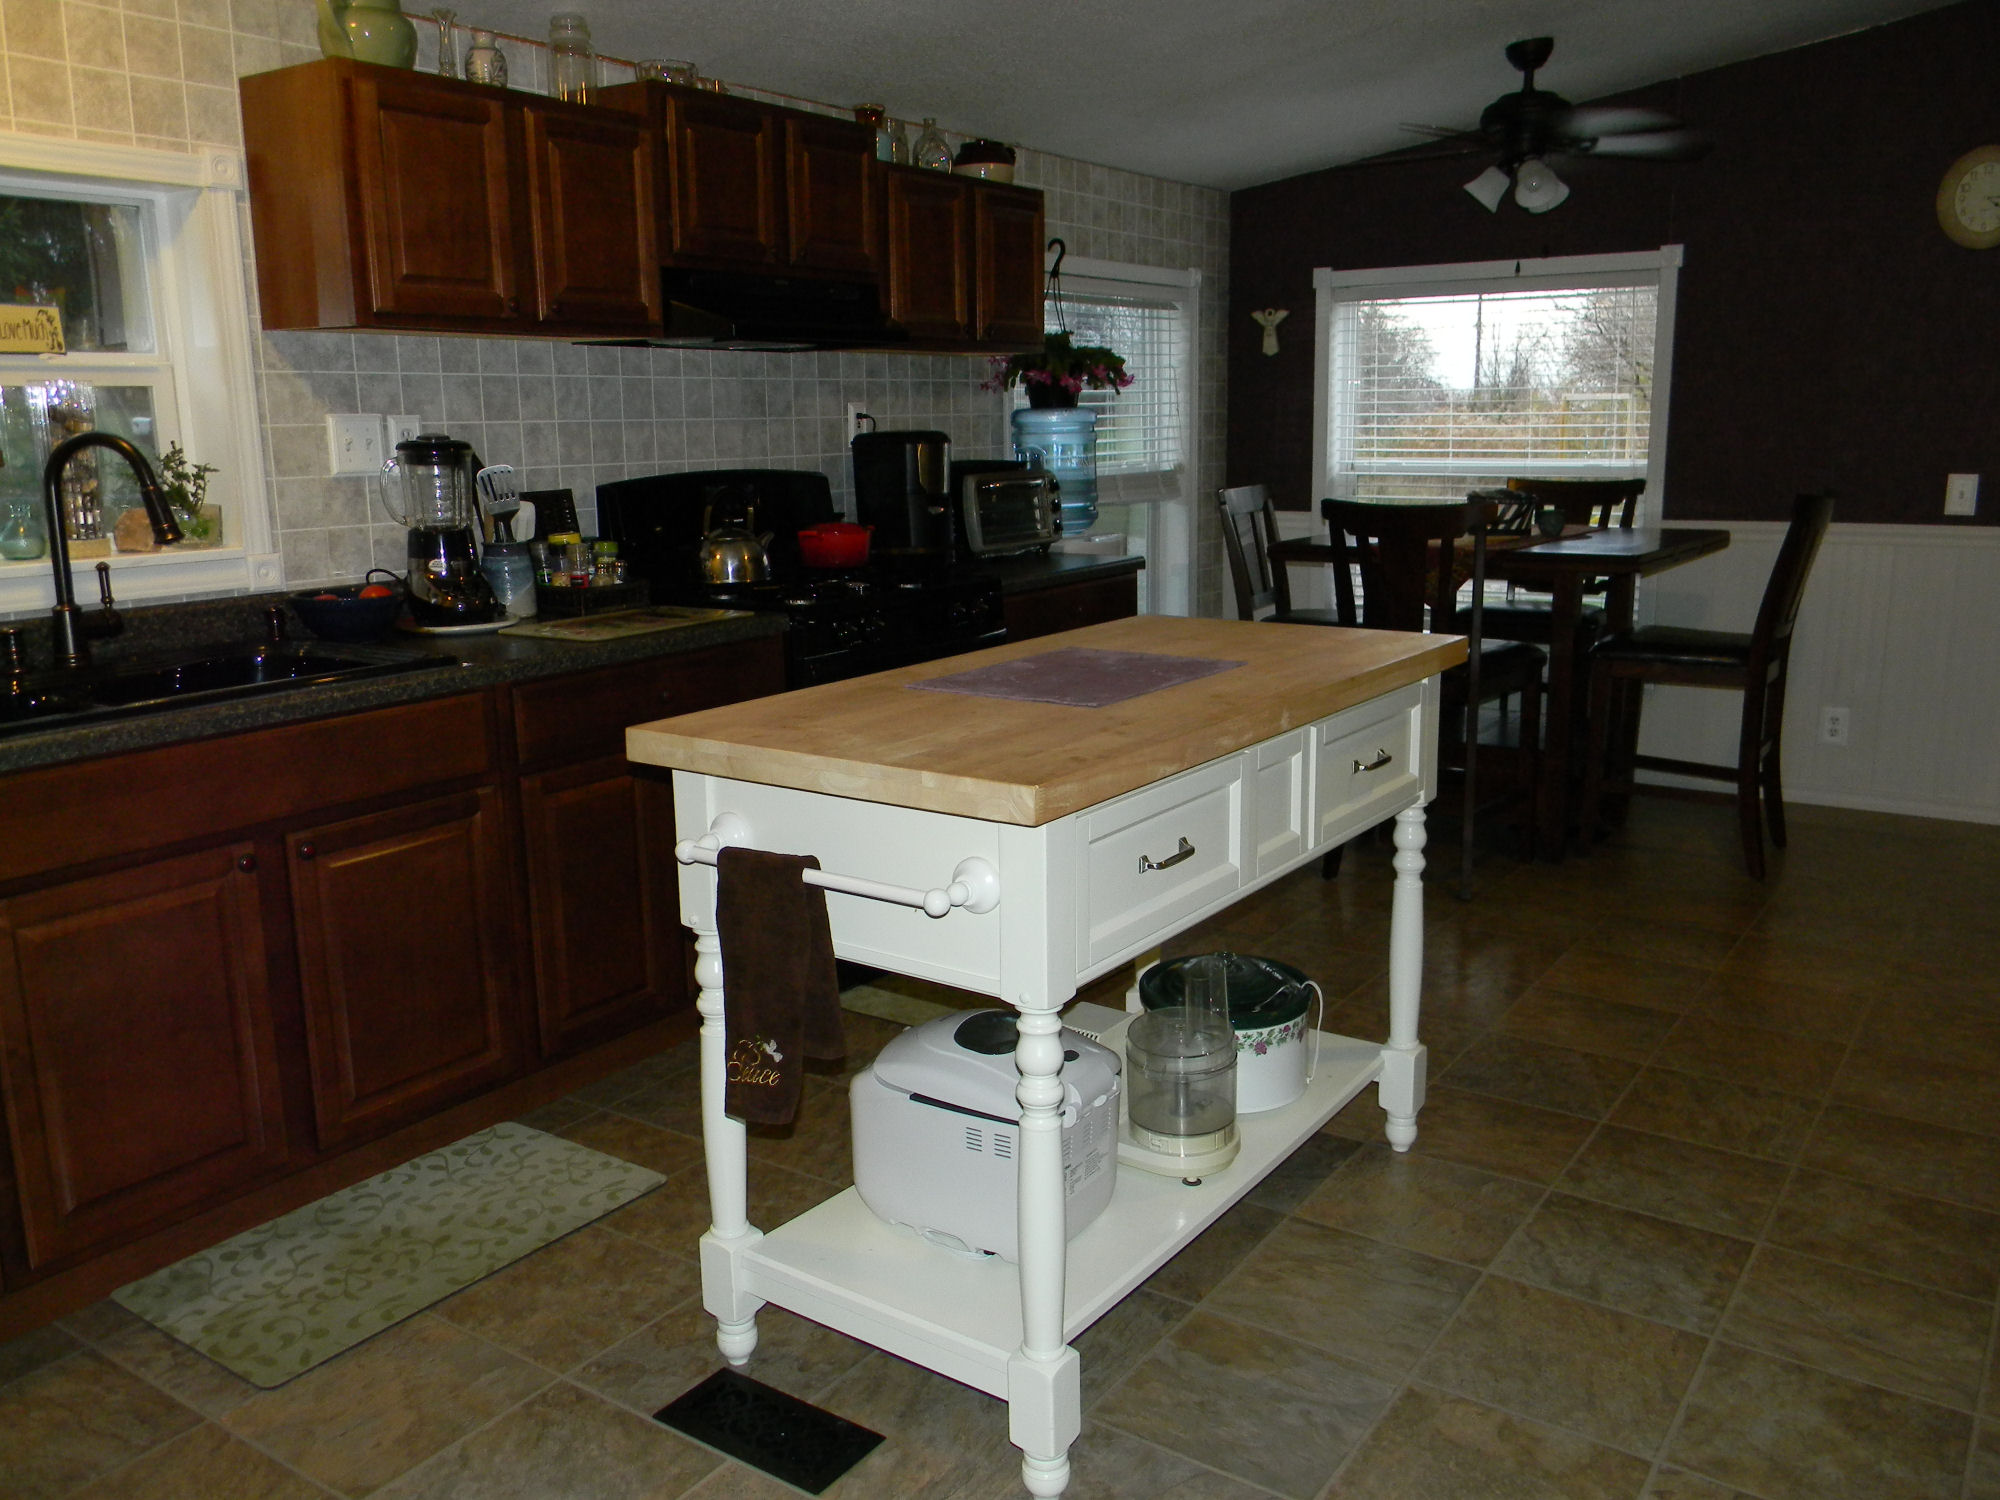 Mobile home kitchen remodel my mobile home makeover for Home kitchen remodeling